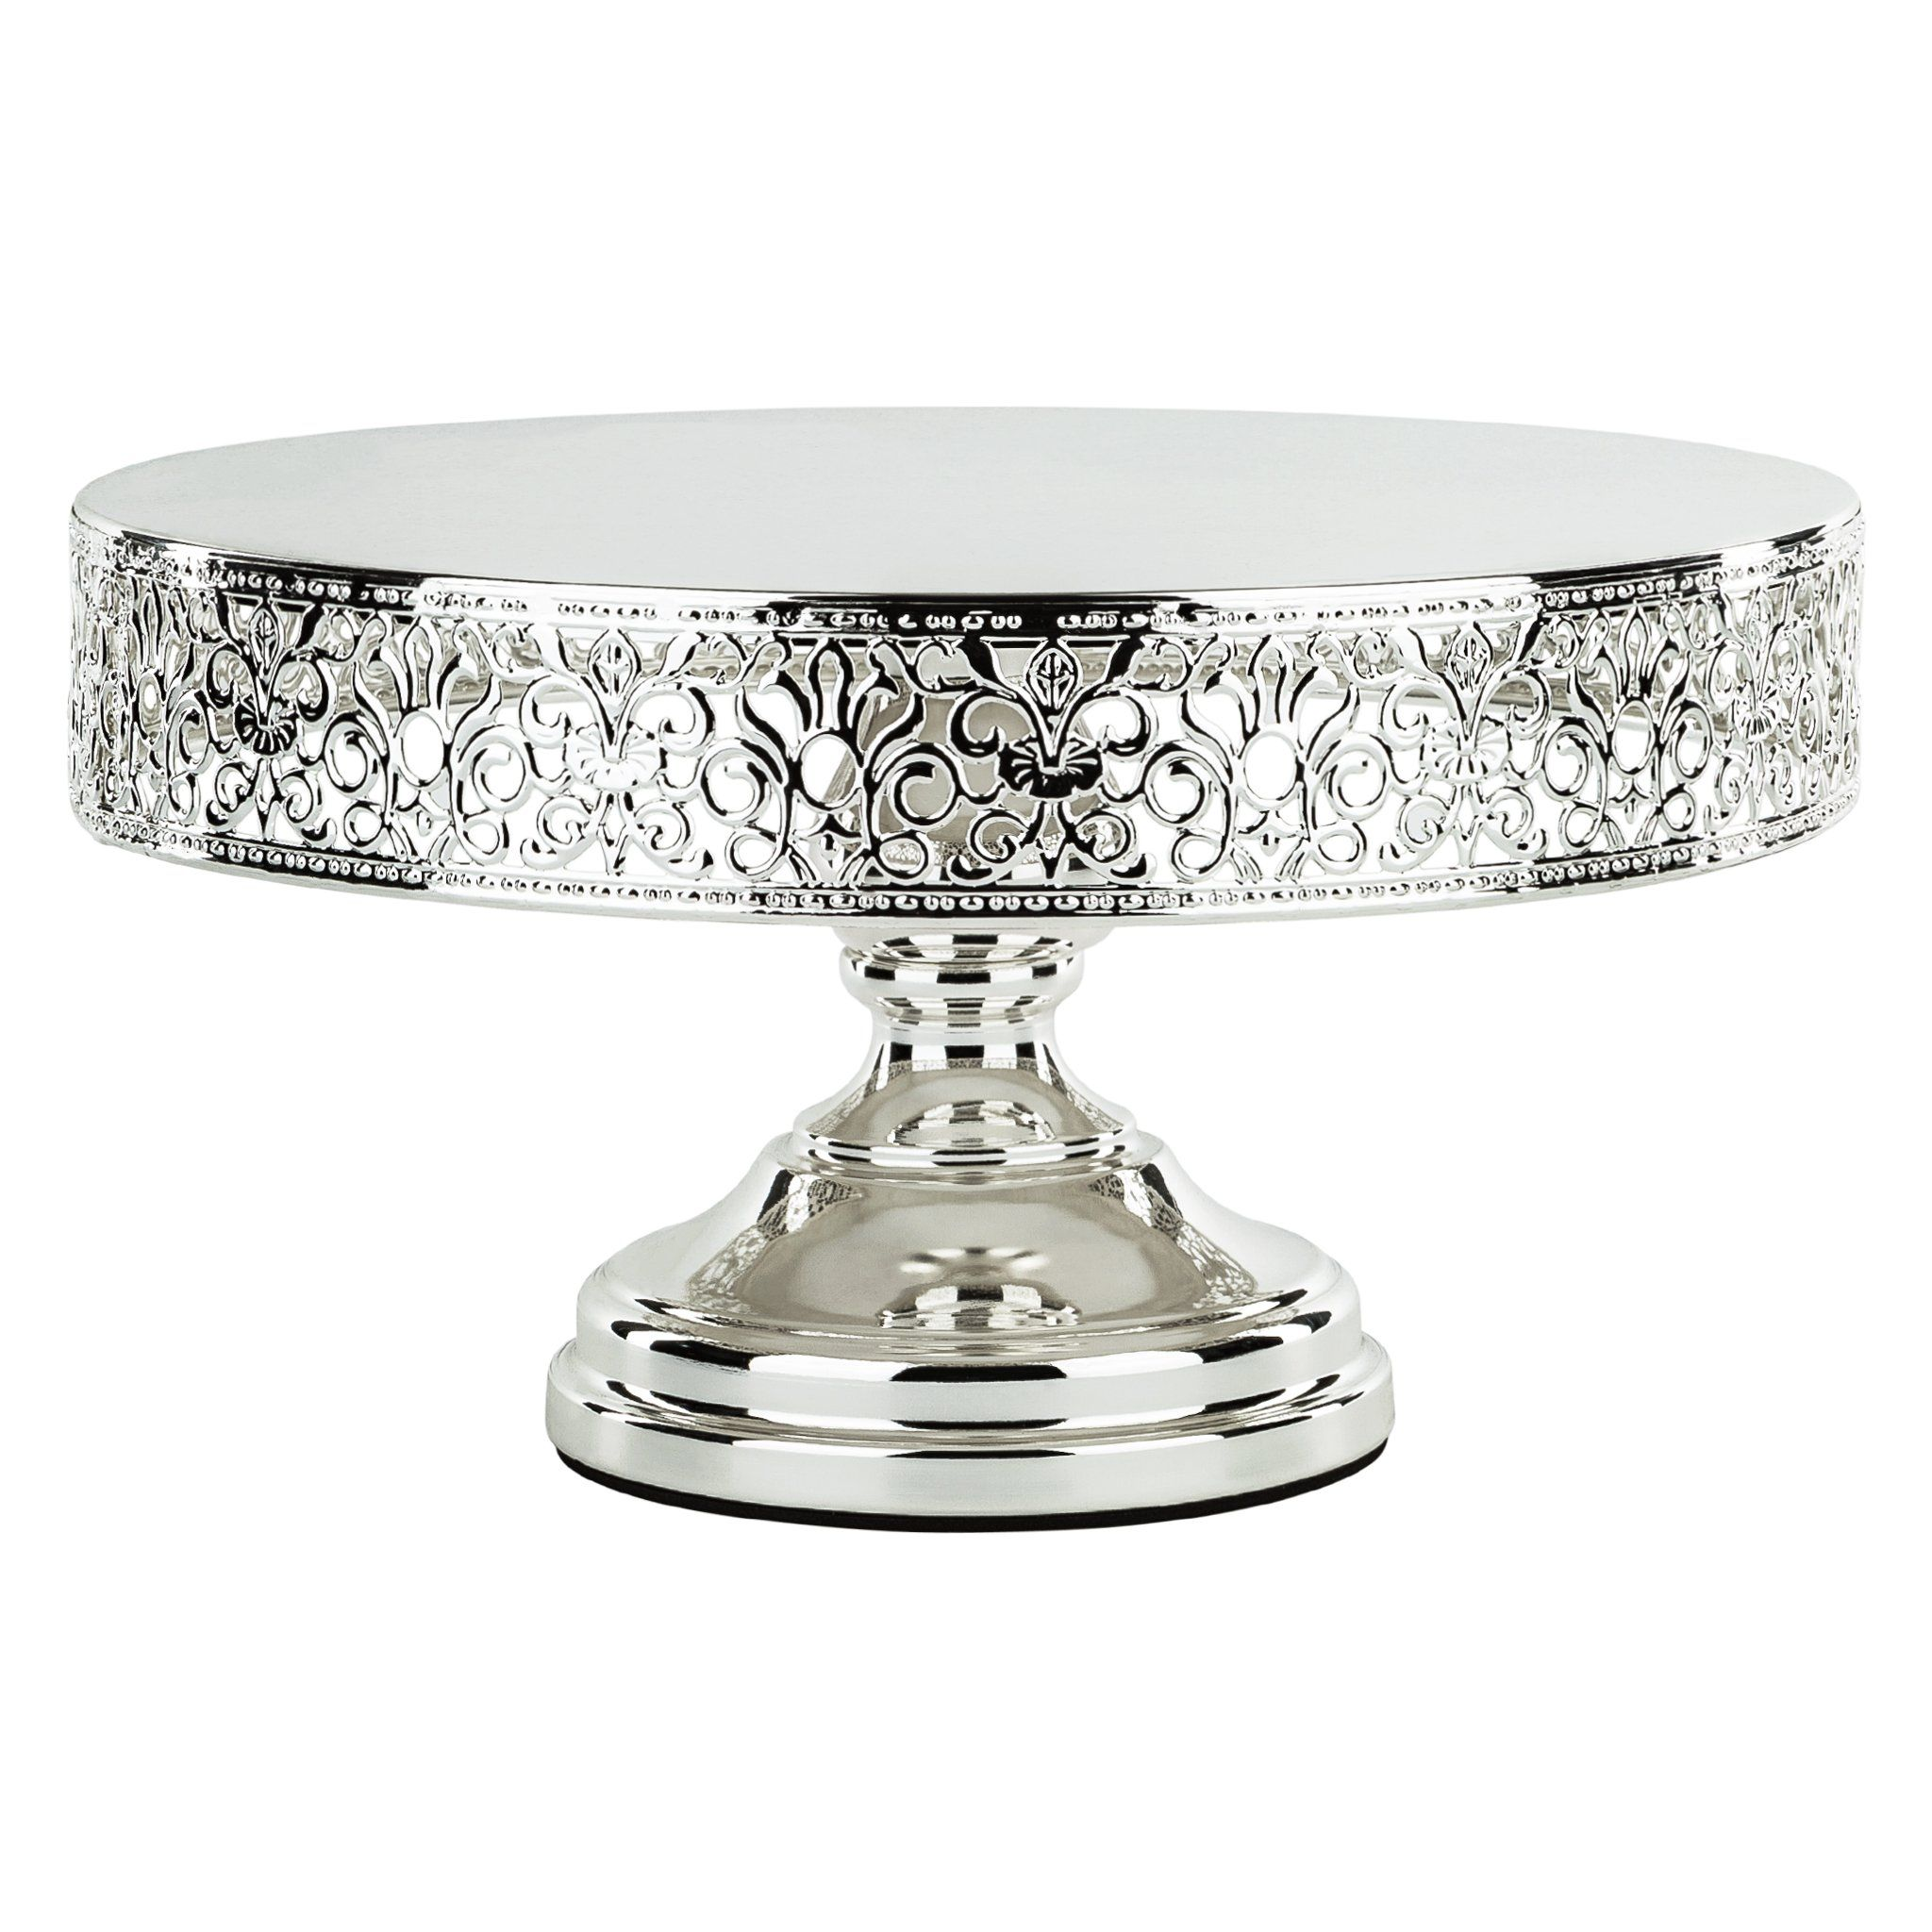 12 Inch Round Shiny Metallic Wedding Cake Stand Silver Plated